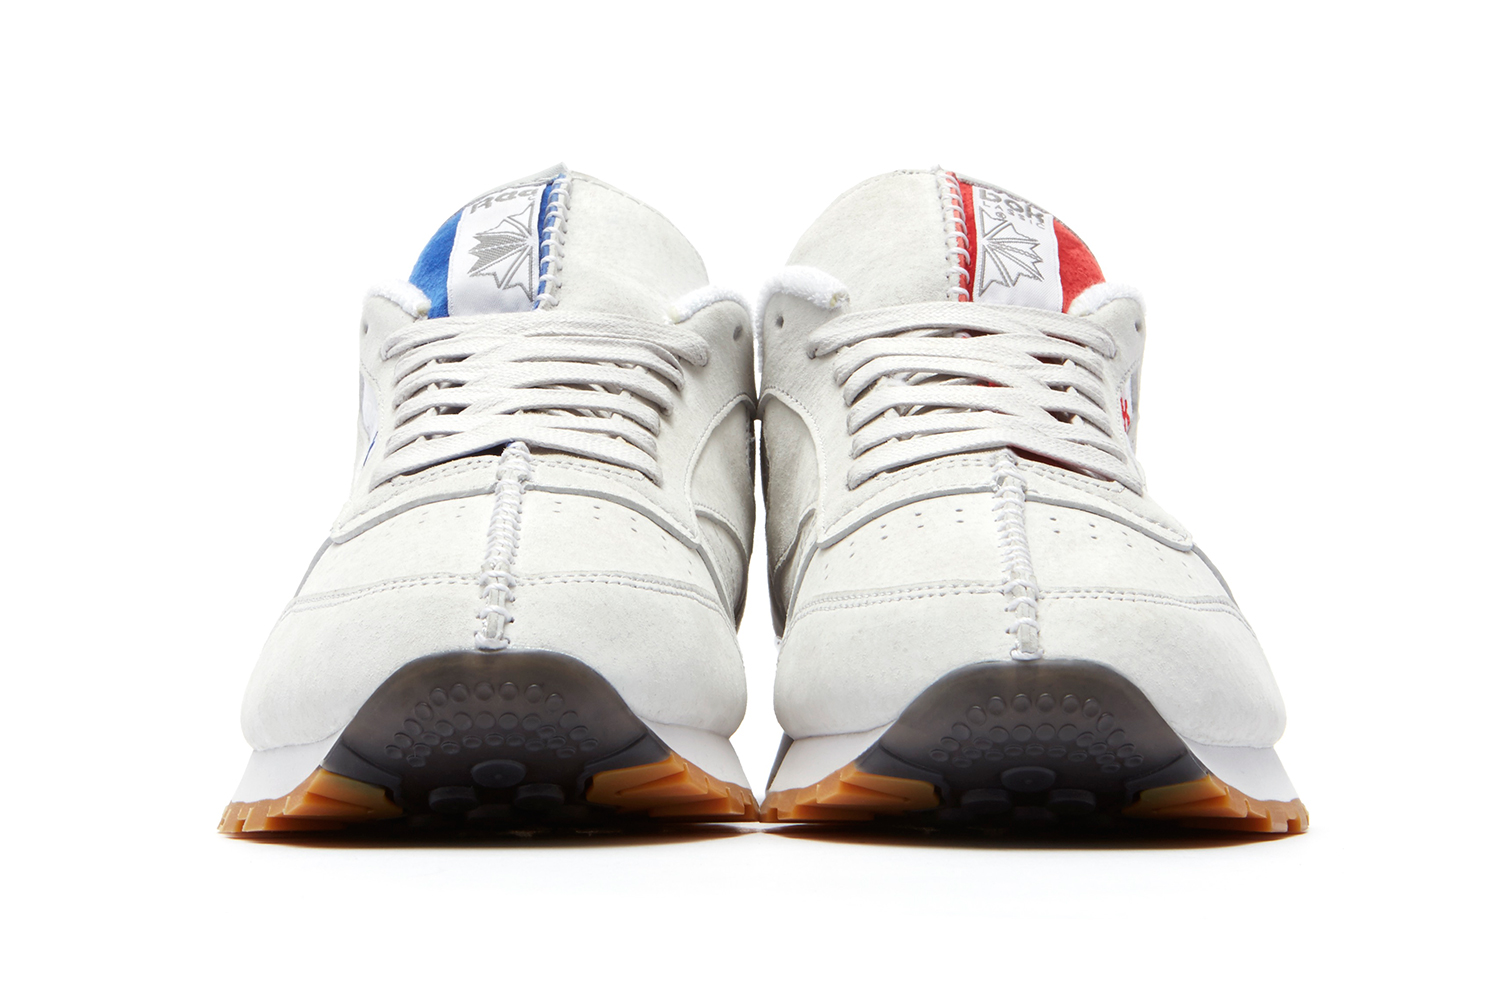 kendrick-lamar-reebok-classic-leather-deconstructed-02.jpg